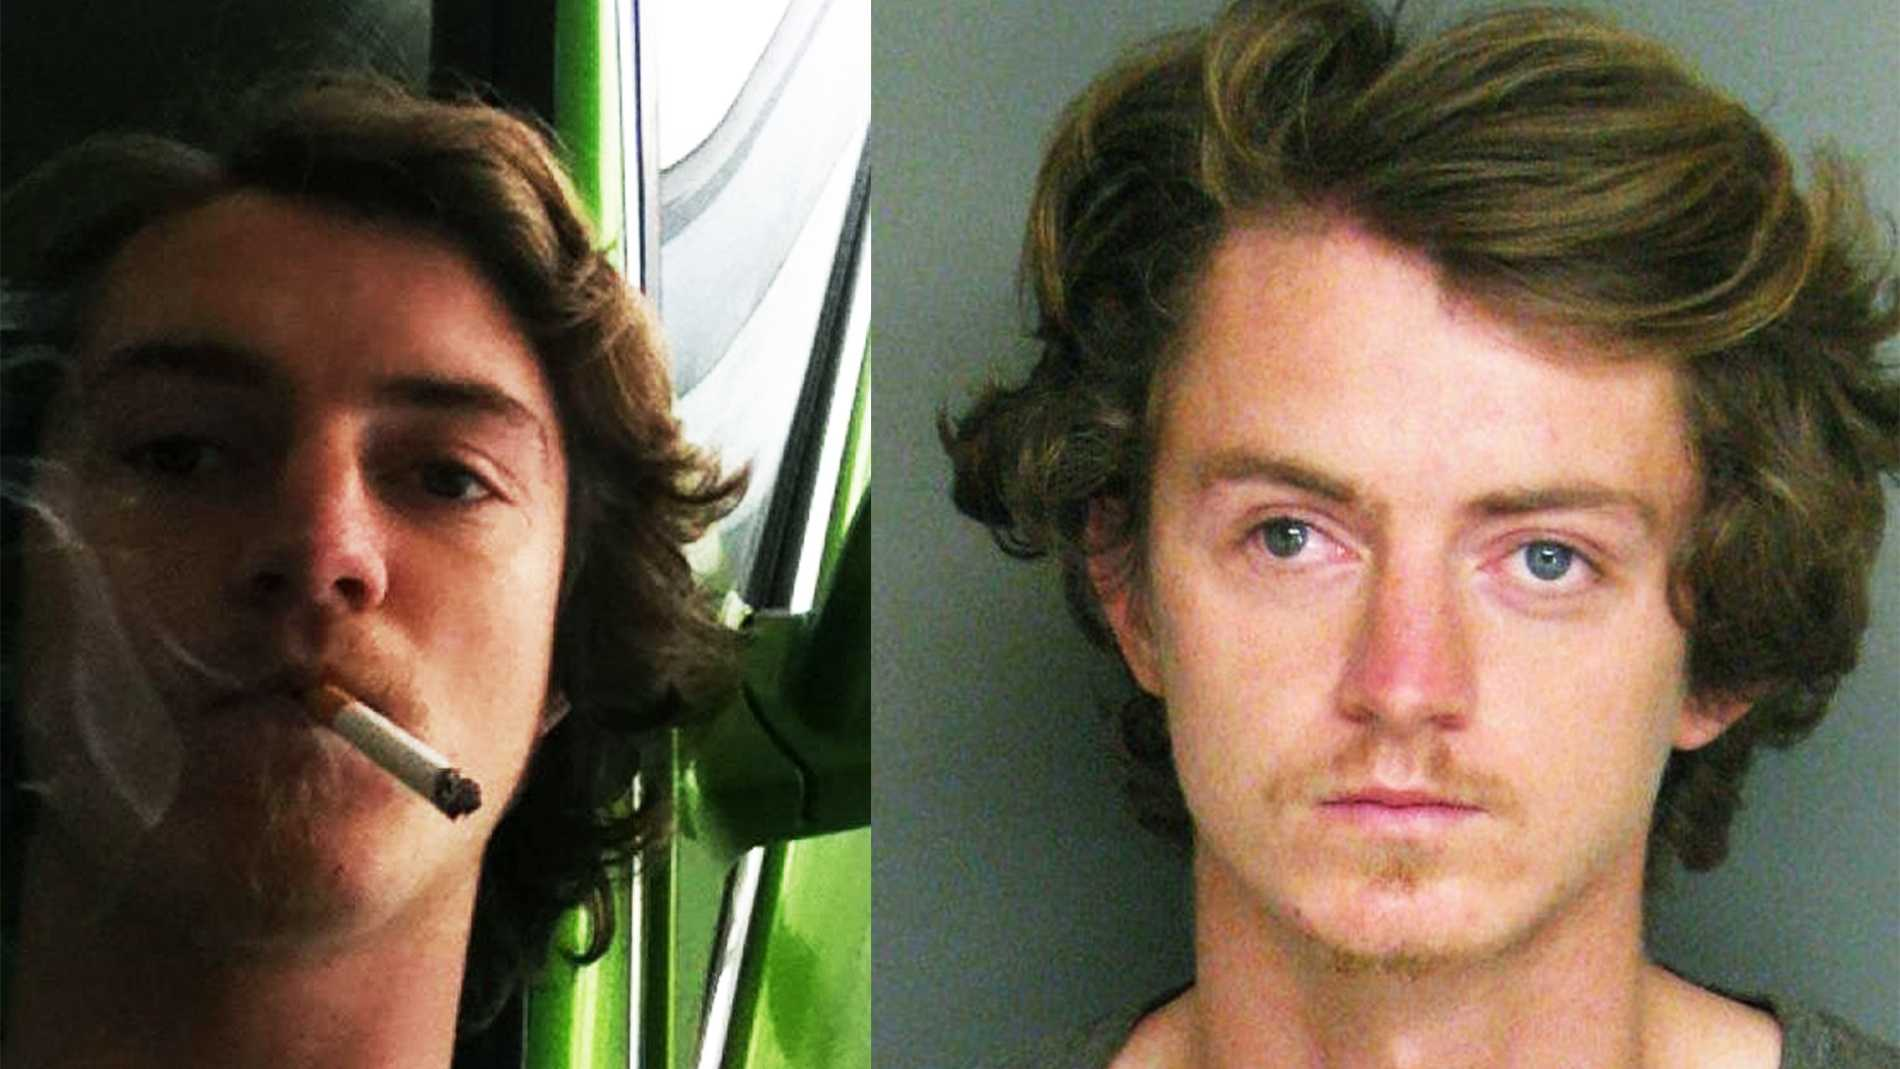 Harlan Dean Graves is seen smoking in a photo he uploaded on Facebook, left, and in a mug shot, right.